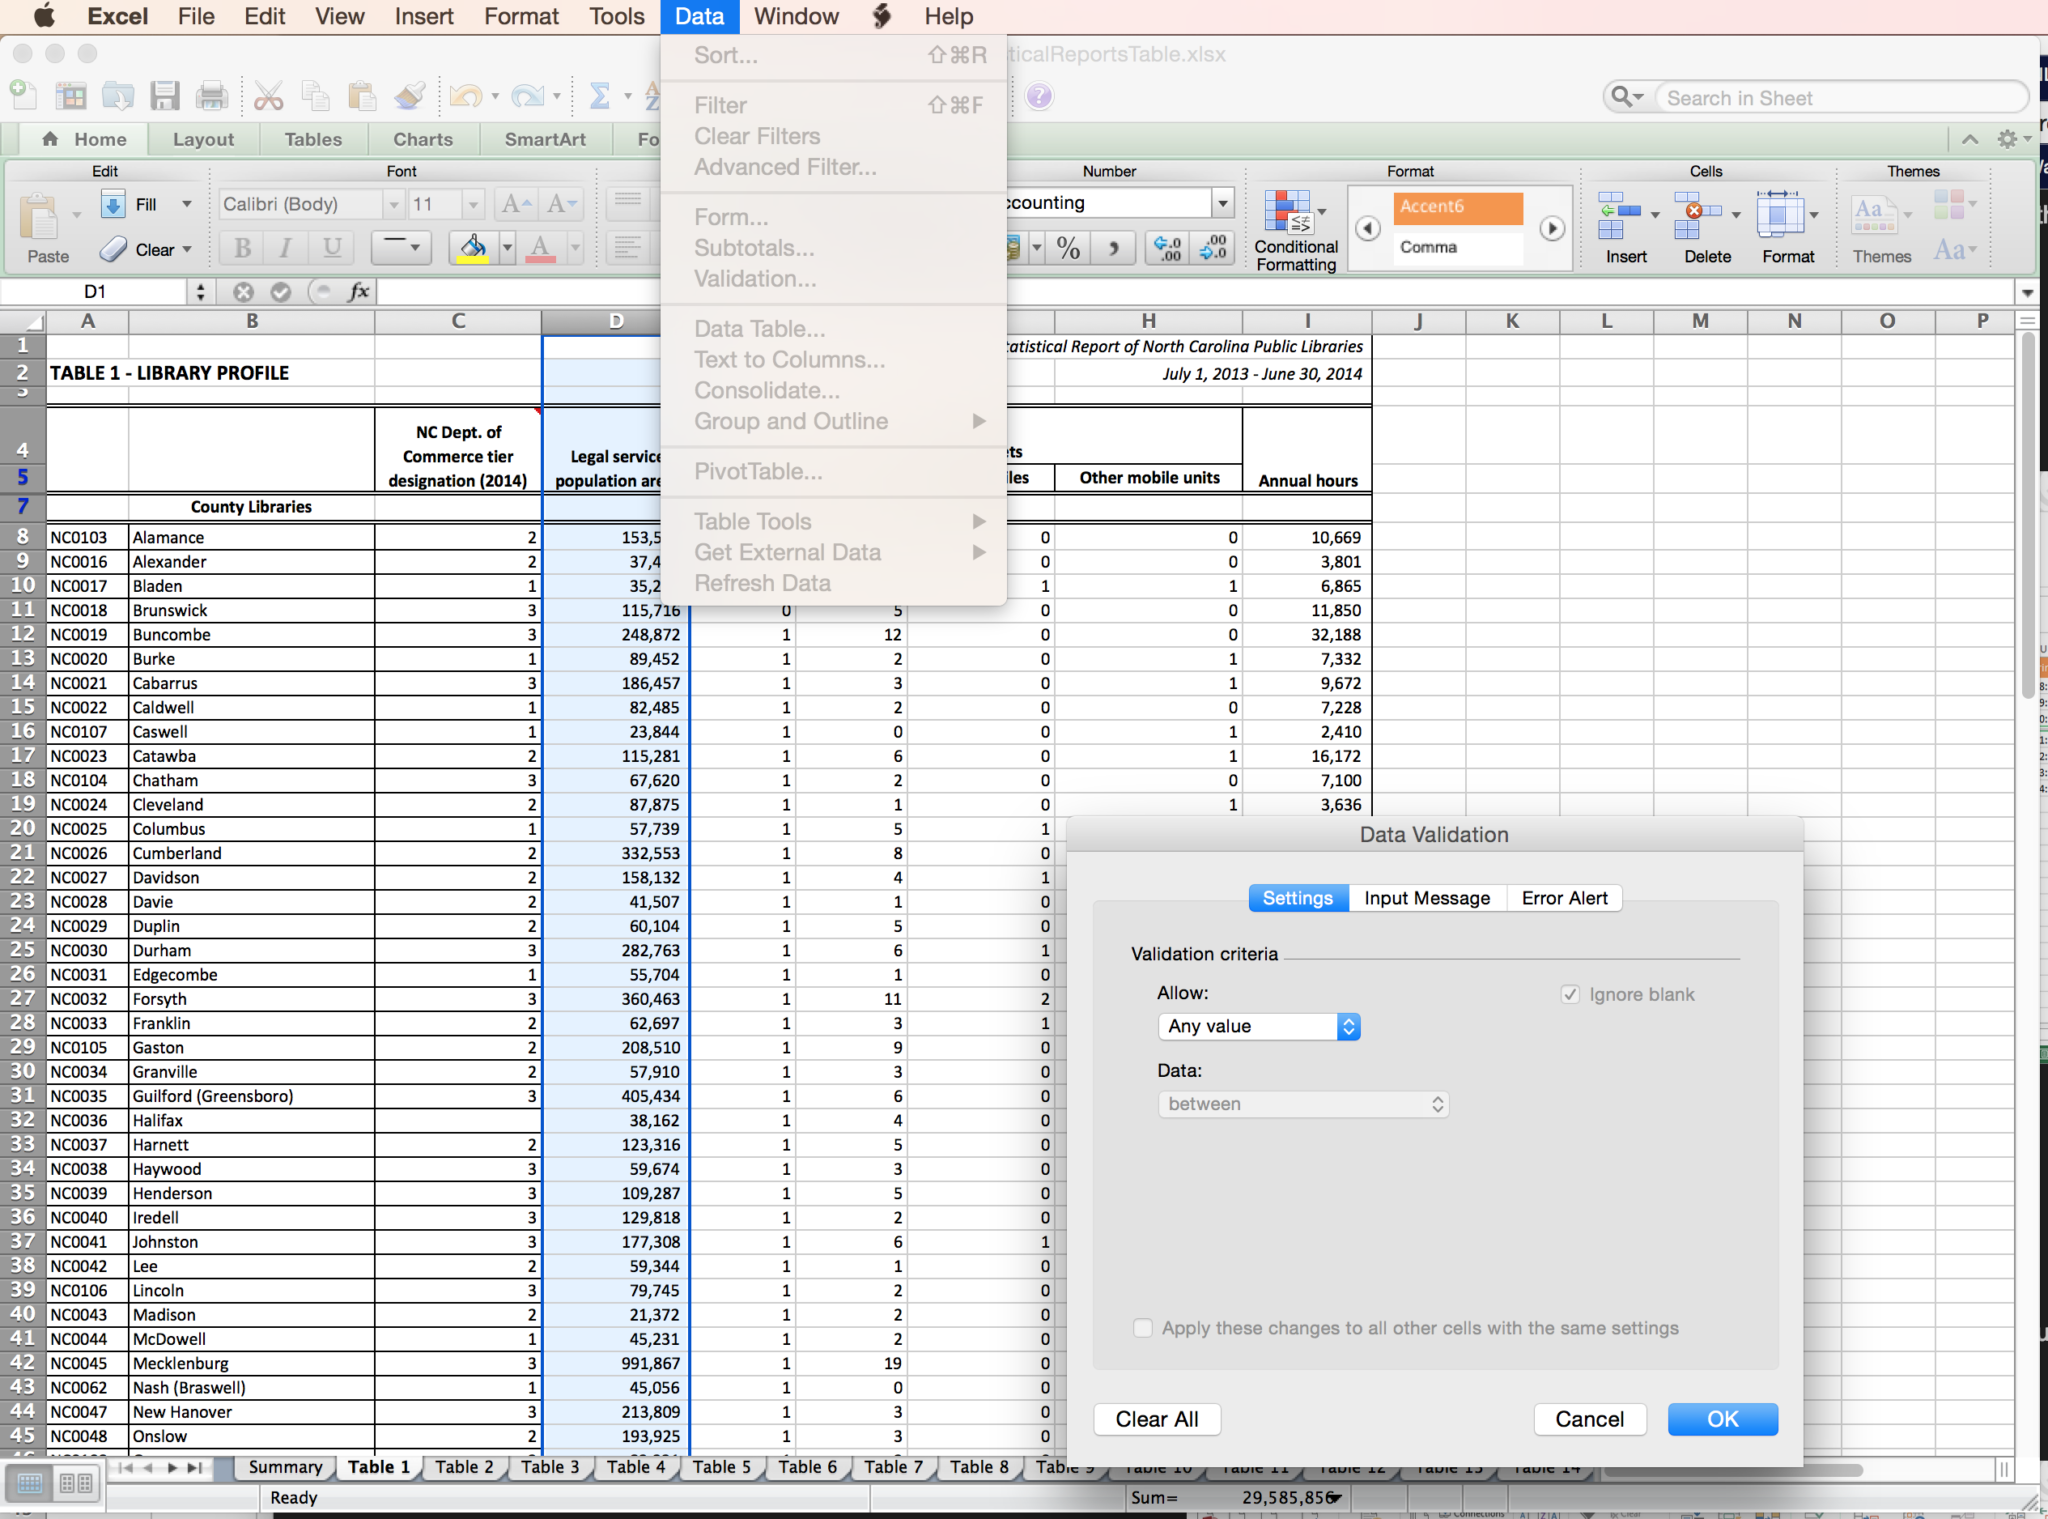 Excel Spreadsheet Validation For Fda 21 Cfr Part 1